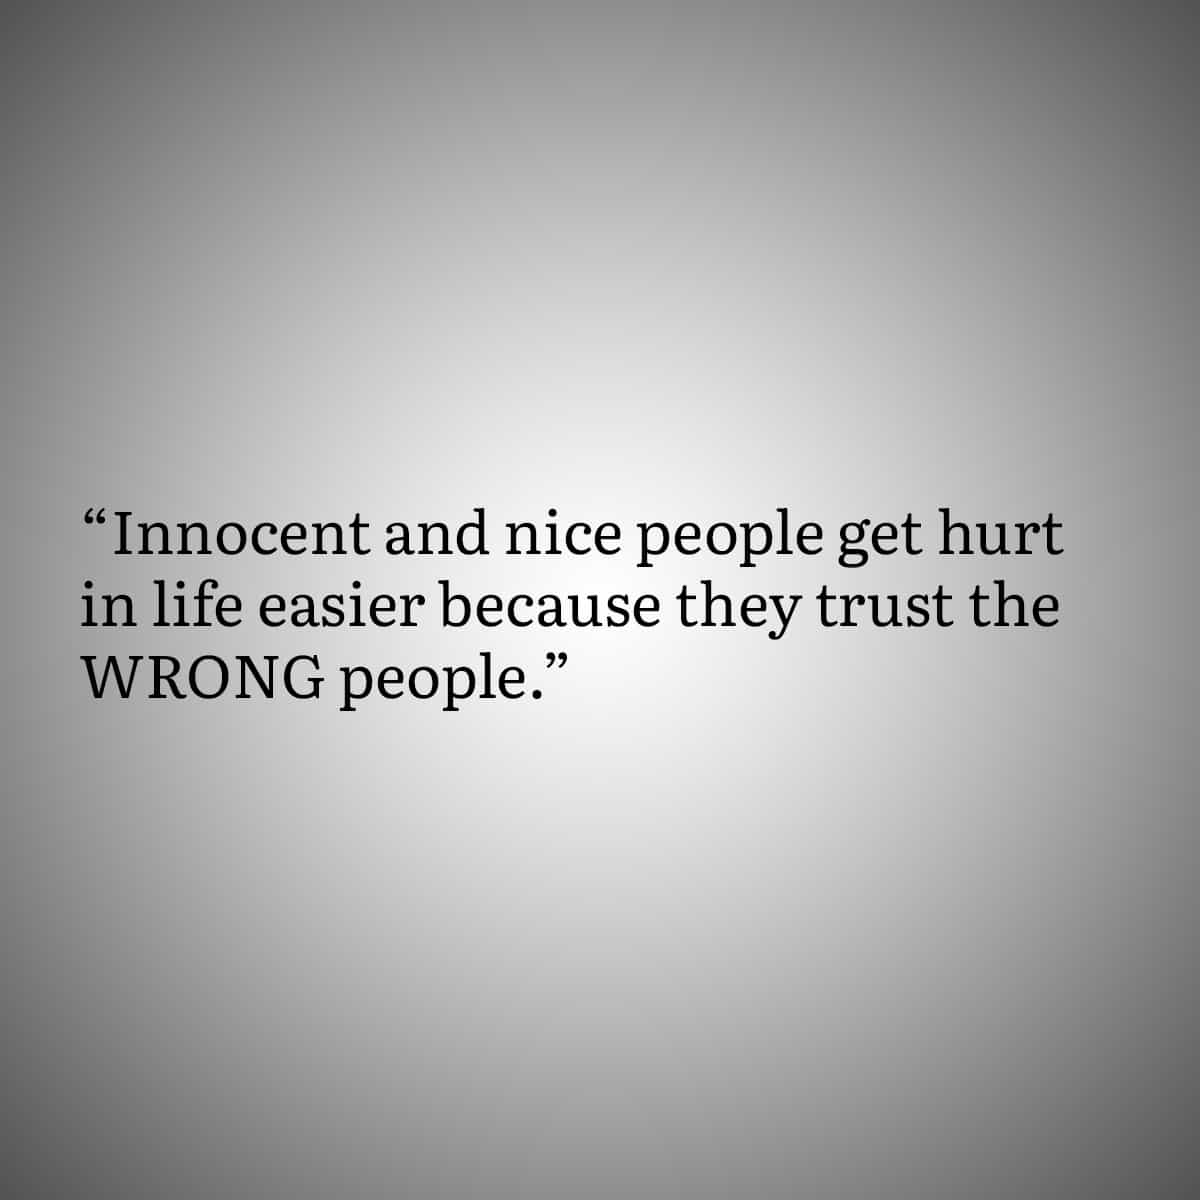 innocent and nice people get hurt in life easier because they trust the WRONG people.